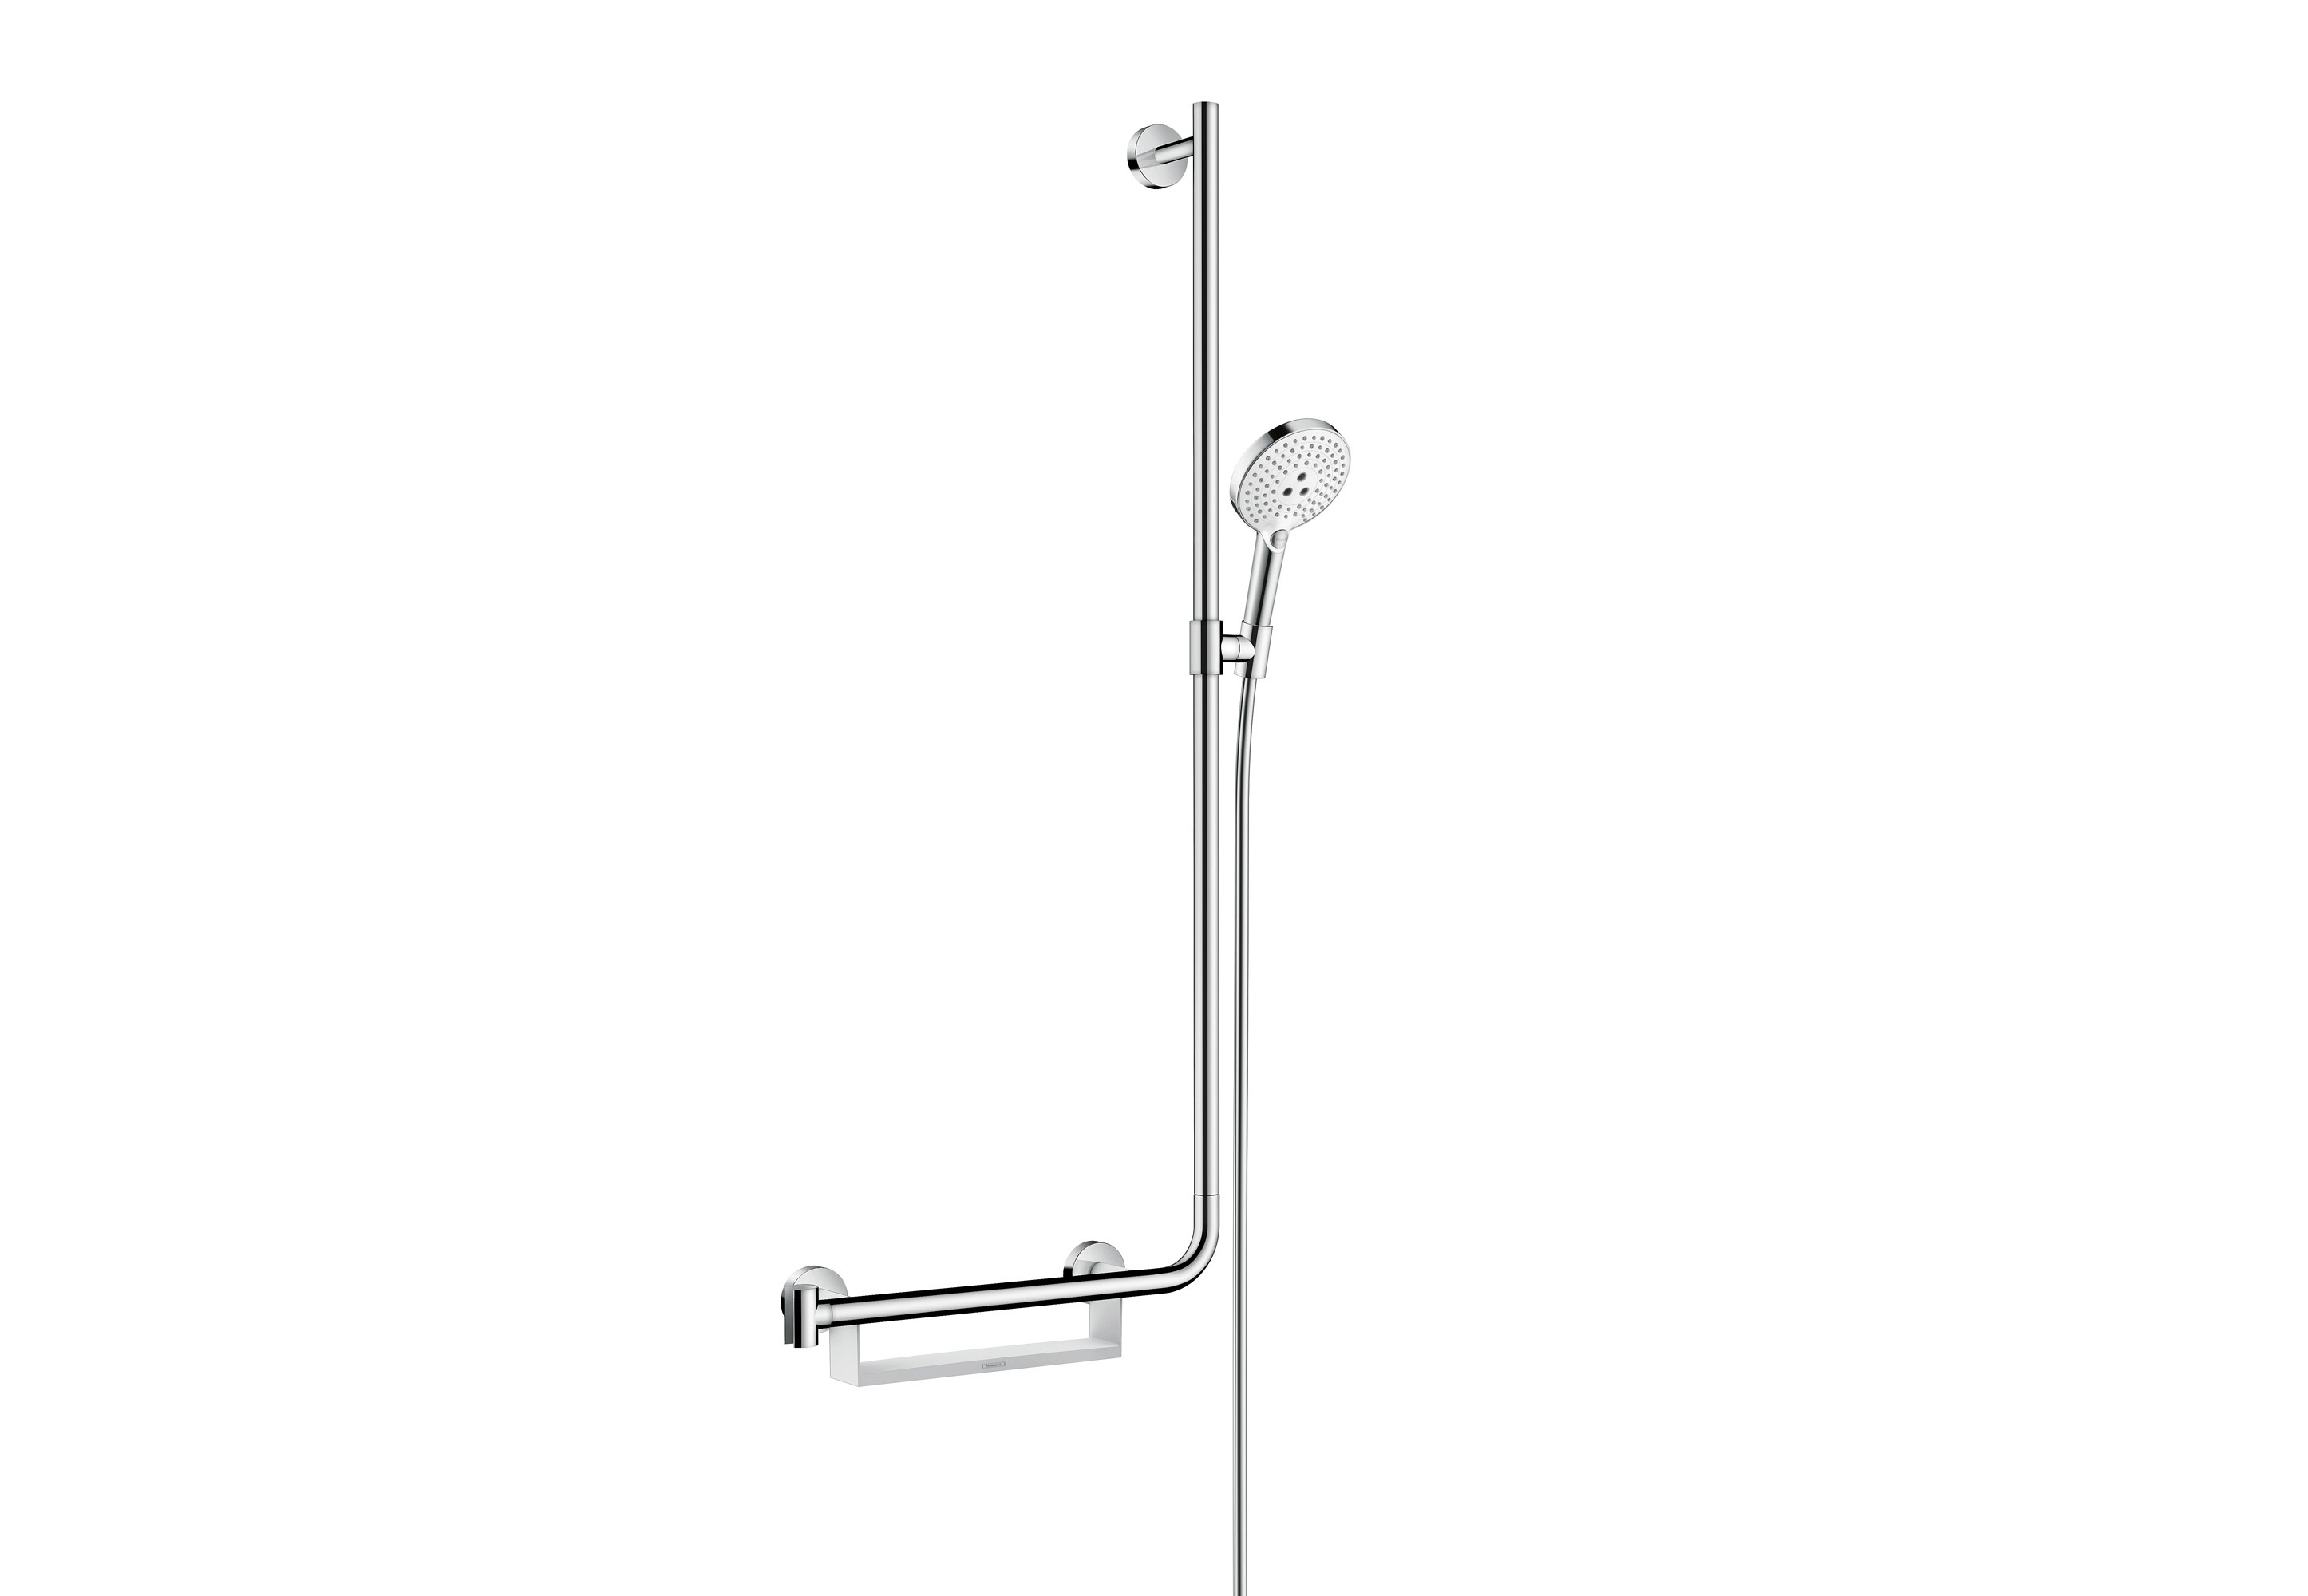 Unica Comfort shower bar right by Hansgrohe | STYLEPARK